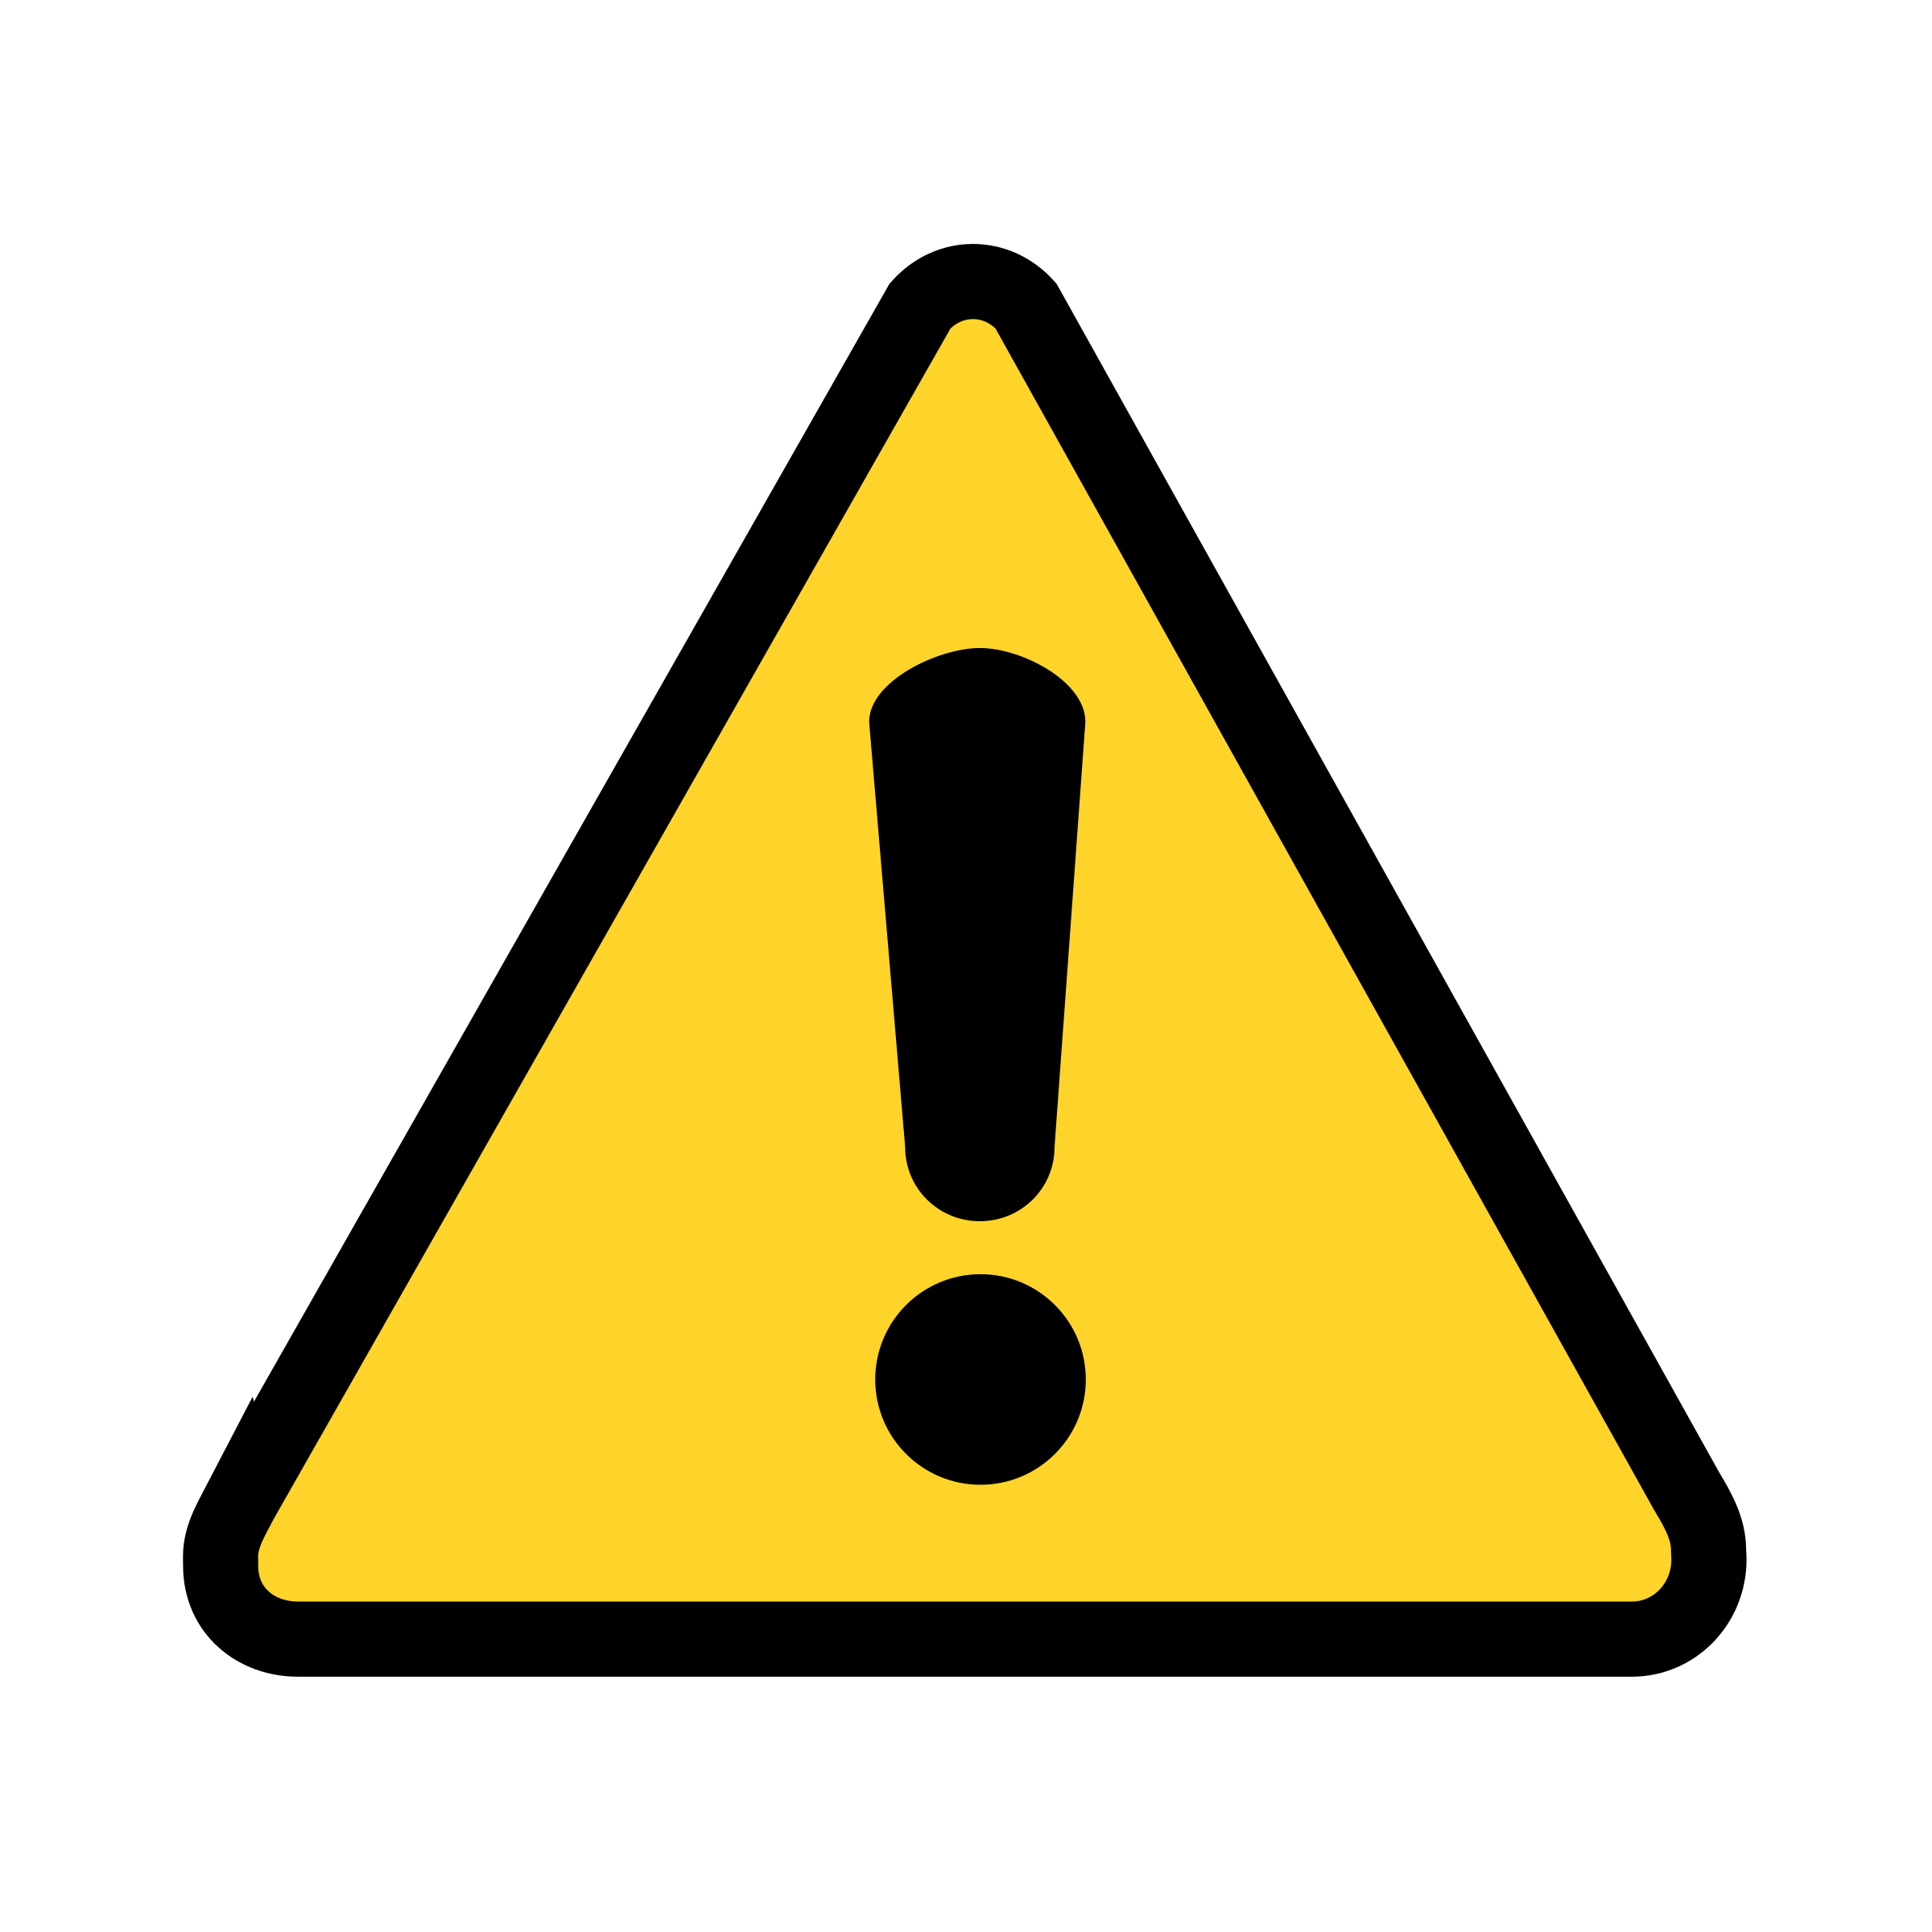 Warning Symbol Png - Warning Icon transparent PNG - StickPNG